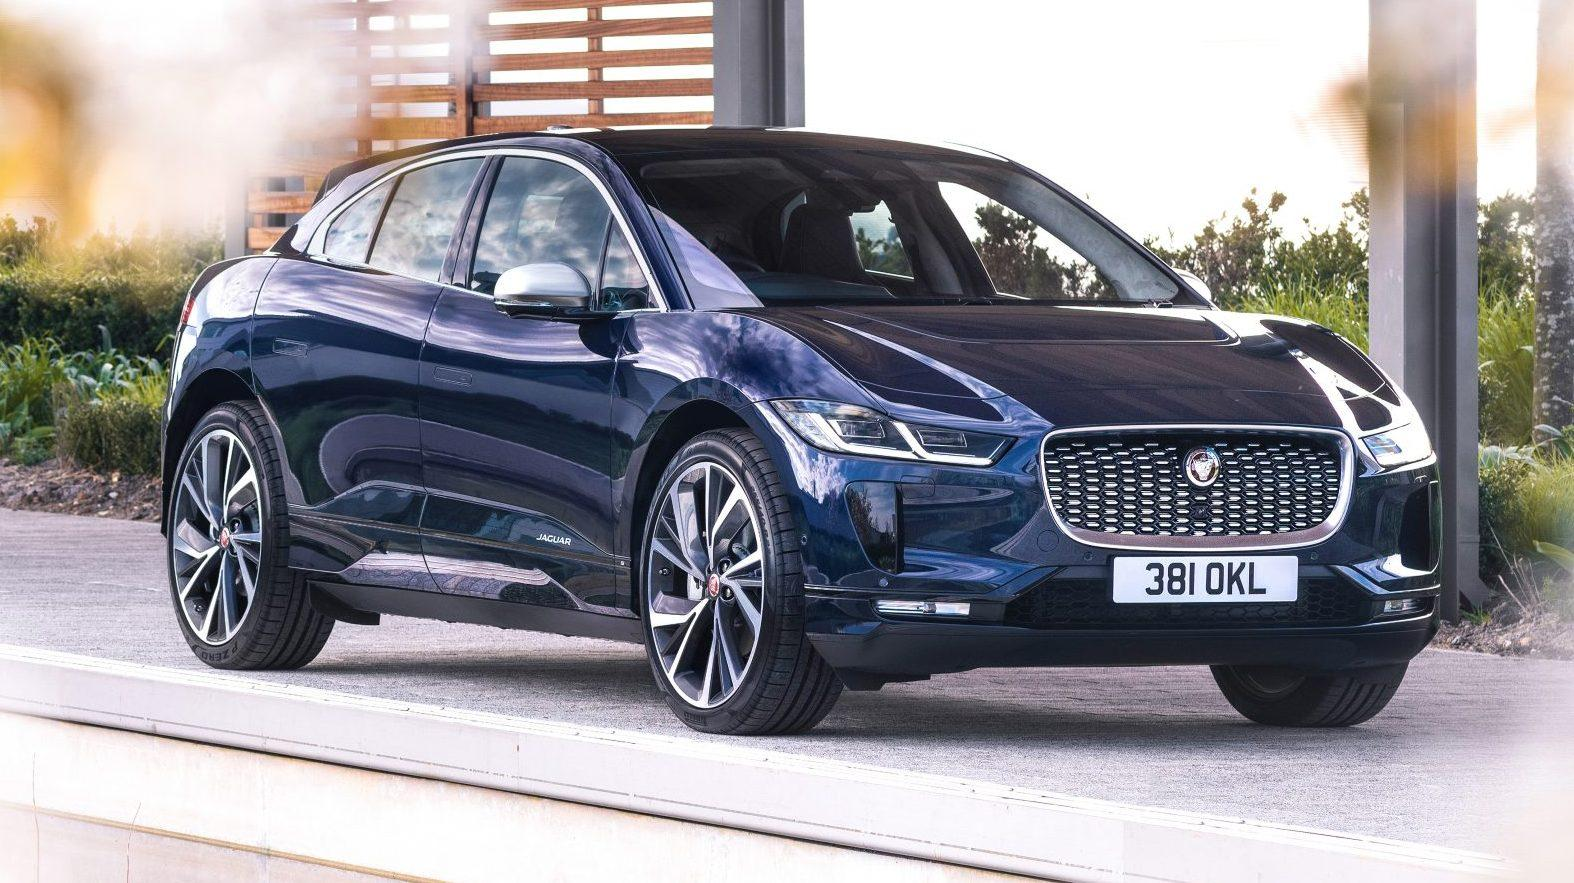 Jaguar I-Pace 2020 3-fase laden